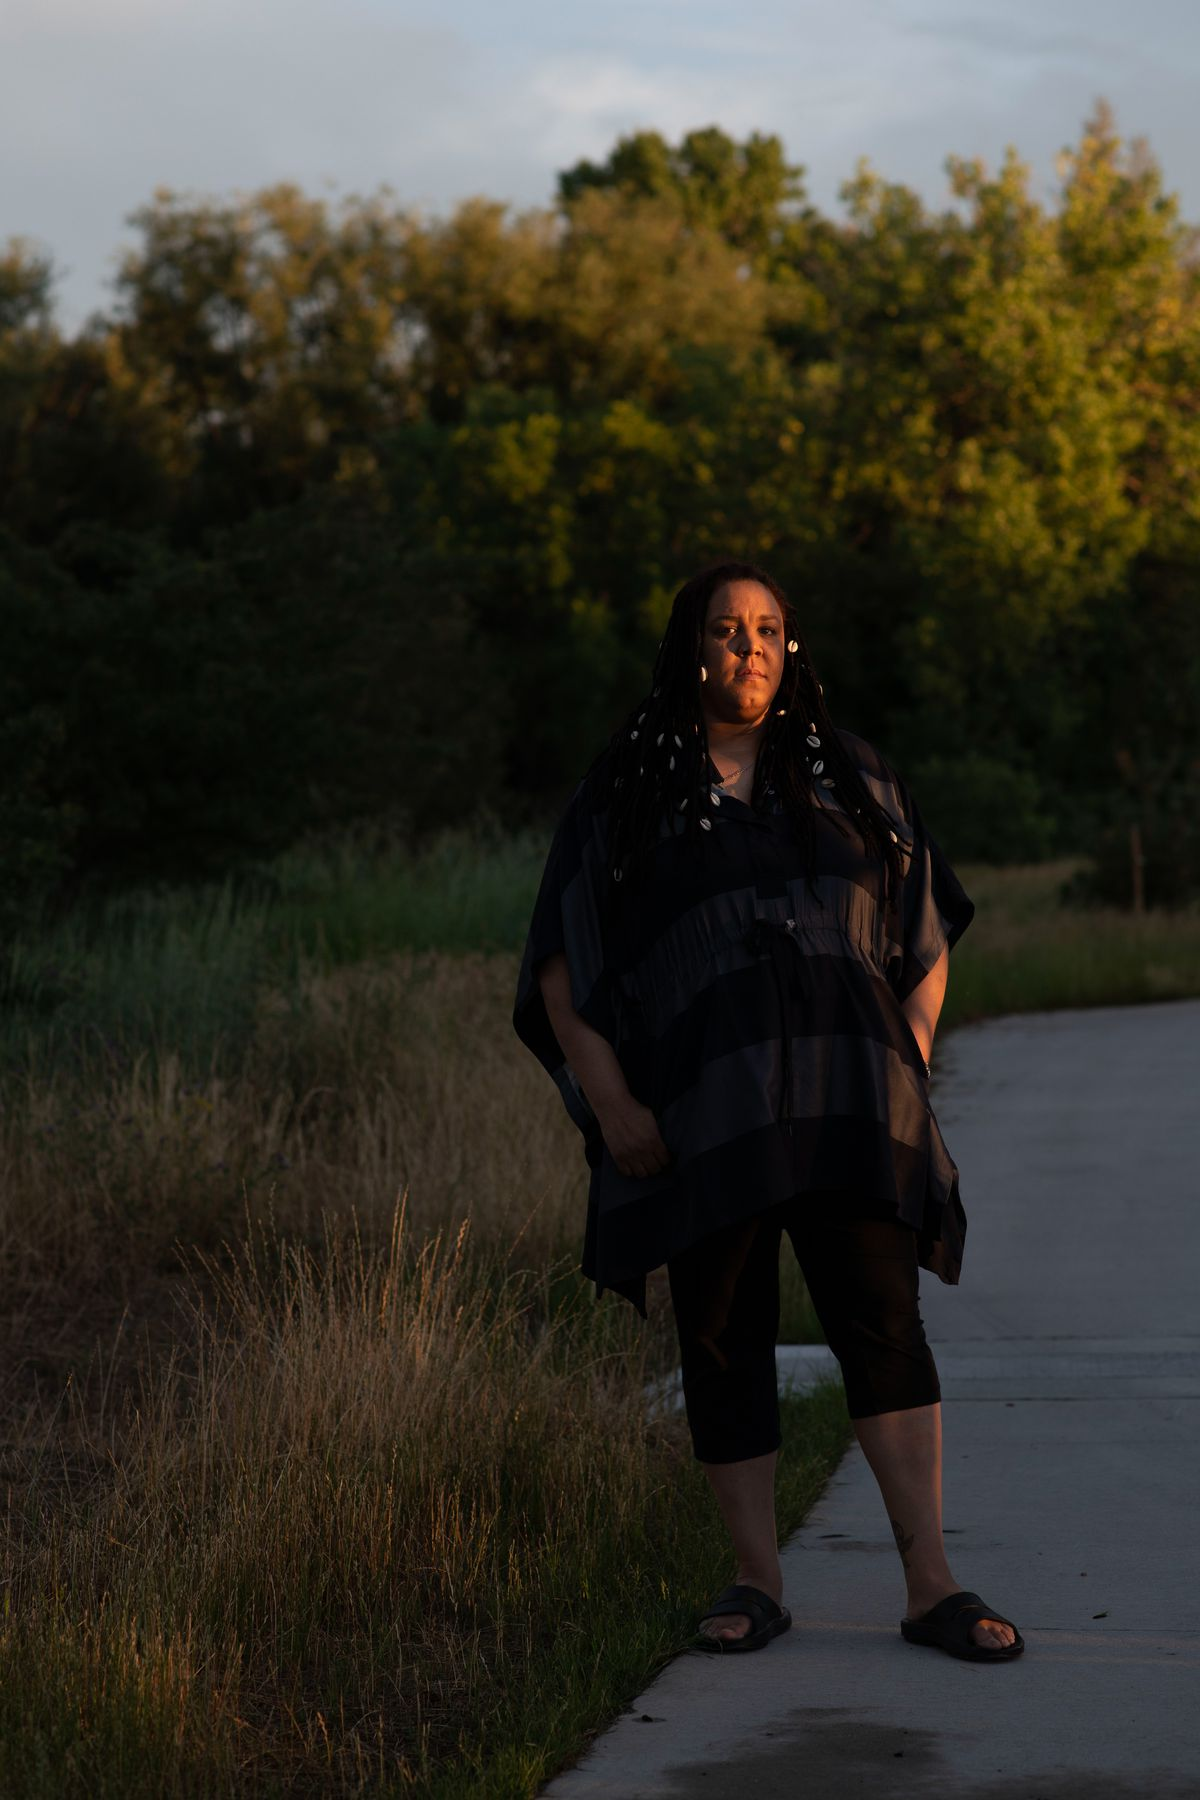 A Black woman stands on a sidewalk in a park. She is looking into the distance, and there is warm sunlight reflected on her face.